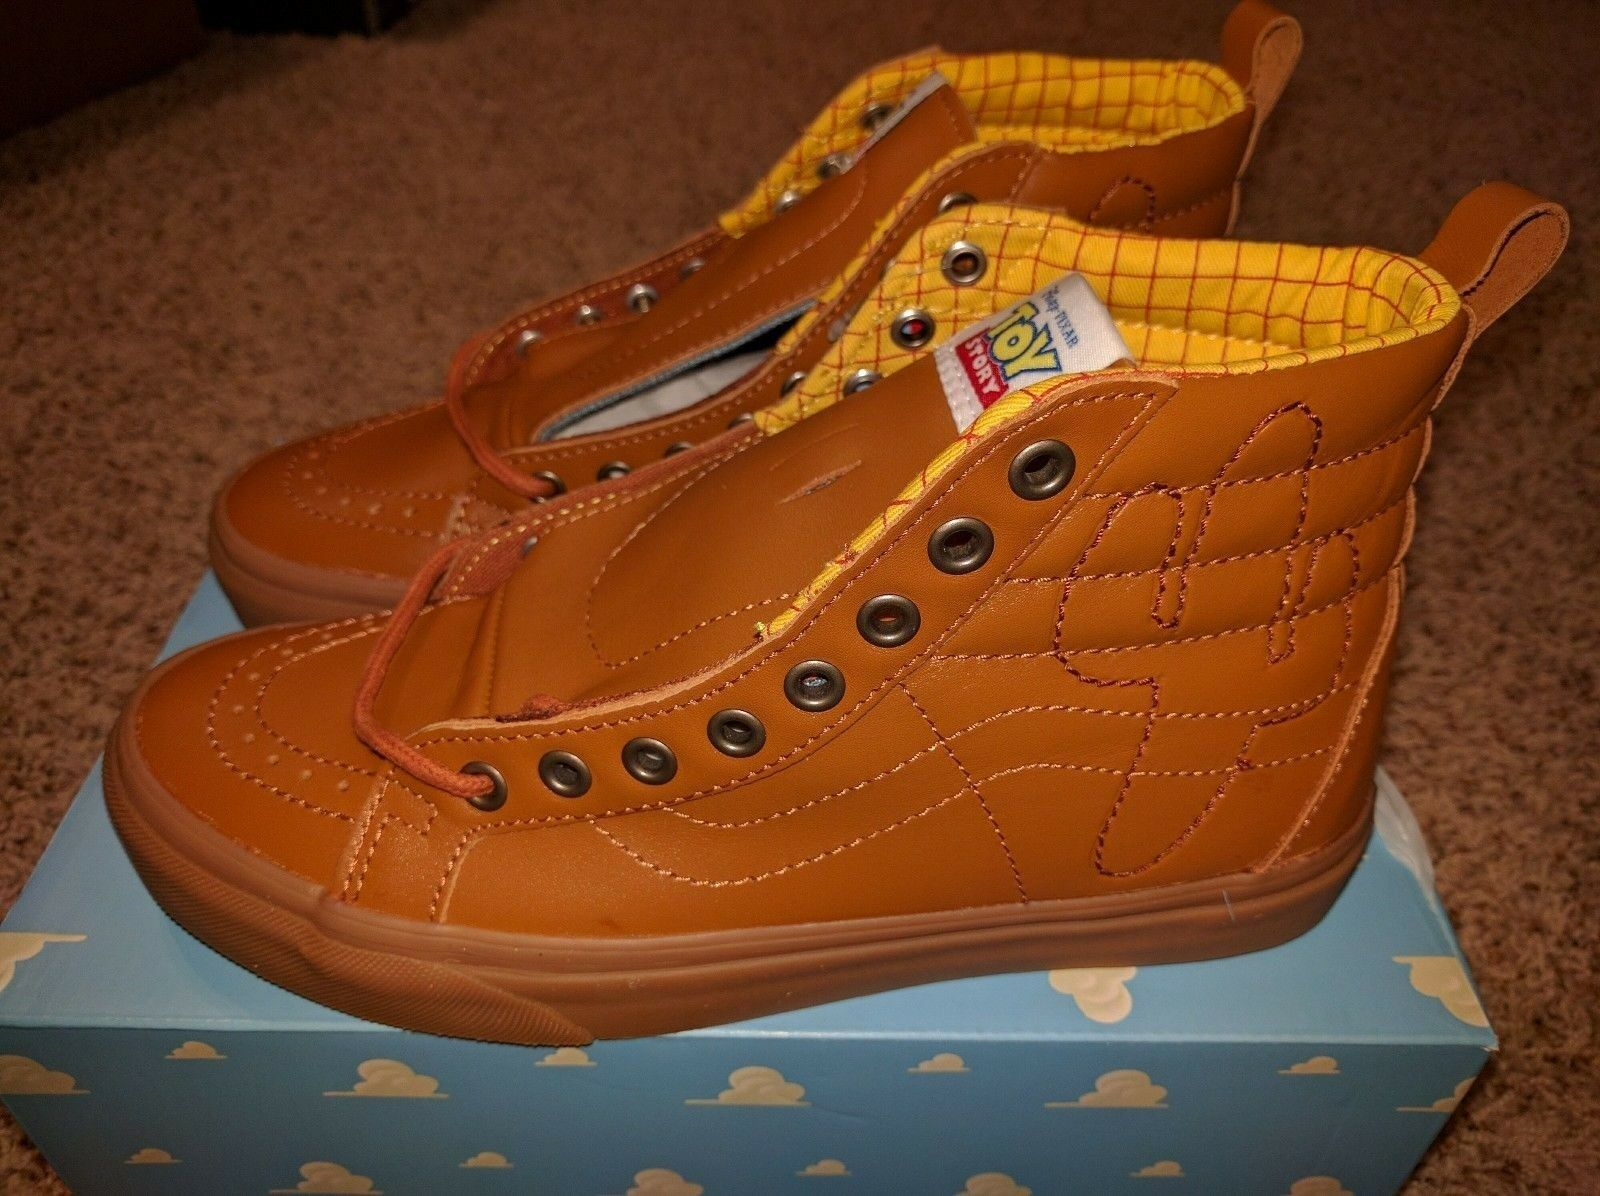 Vans Sk8 Hi Toy Story Woody Boot Land Shoes Brown Disney ANDY Sneakerboots NEW